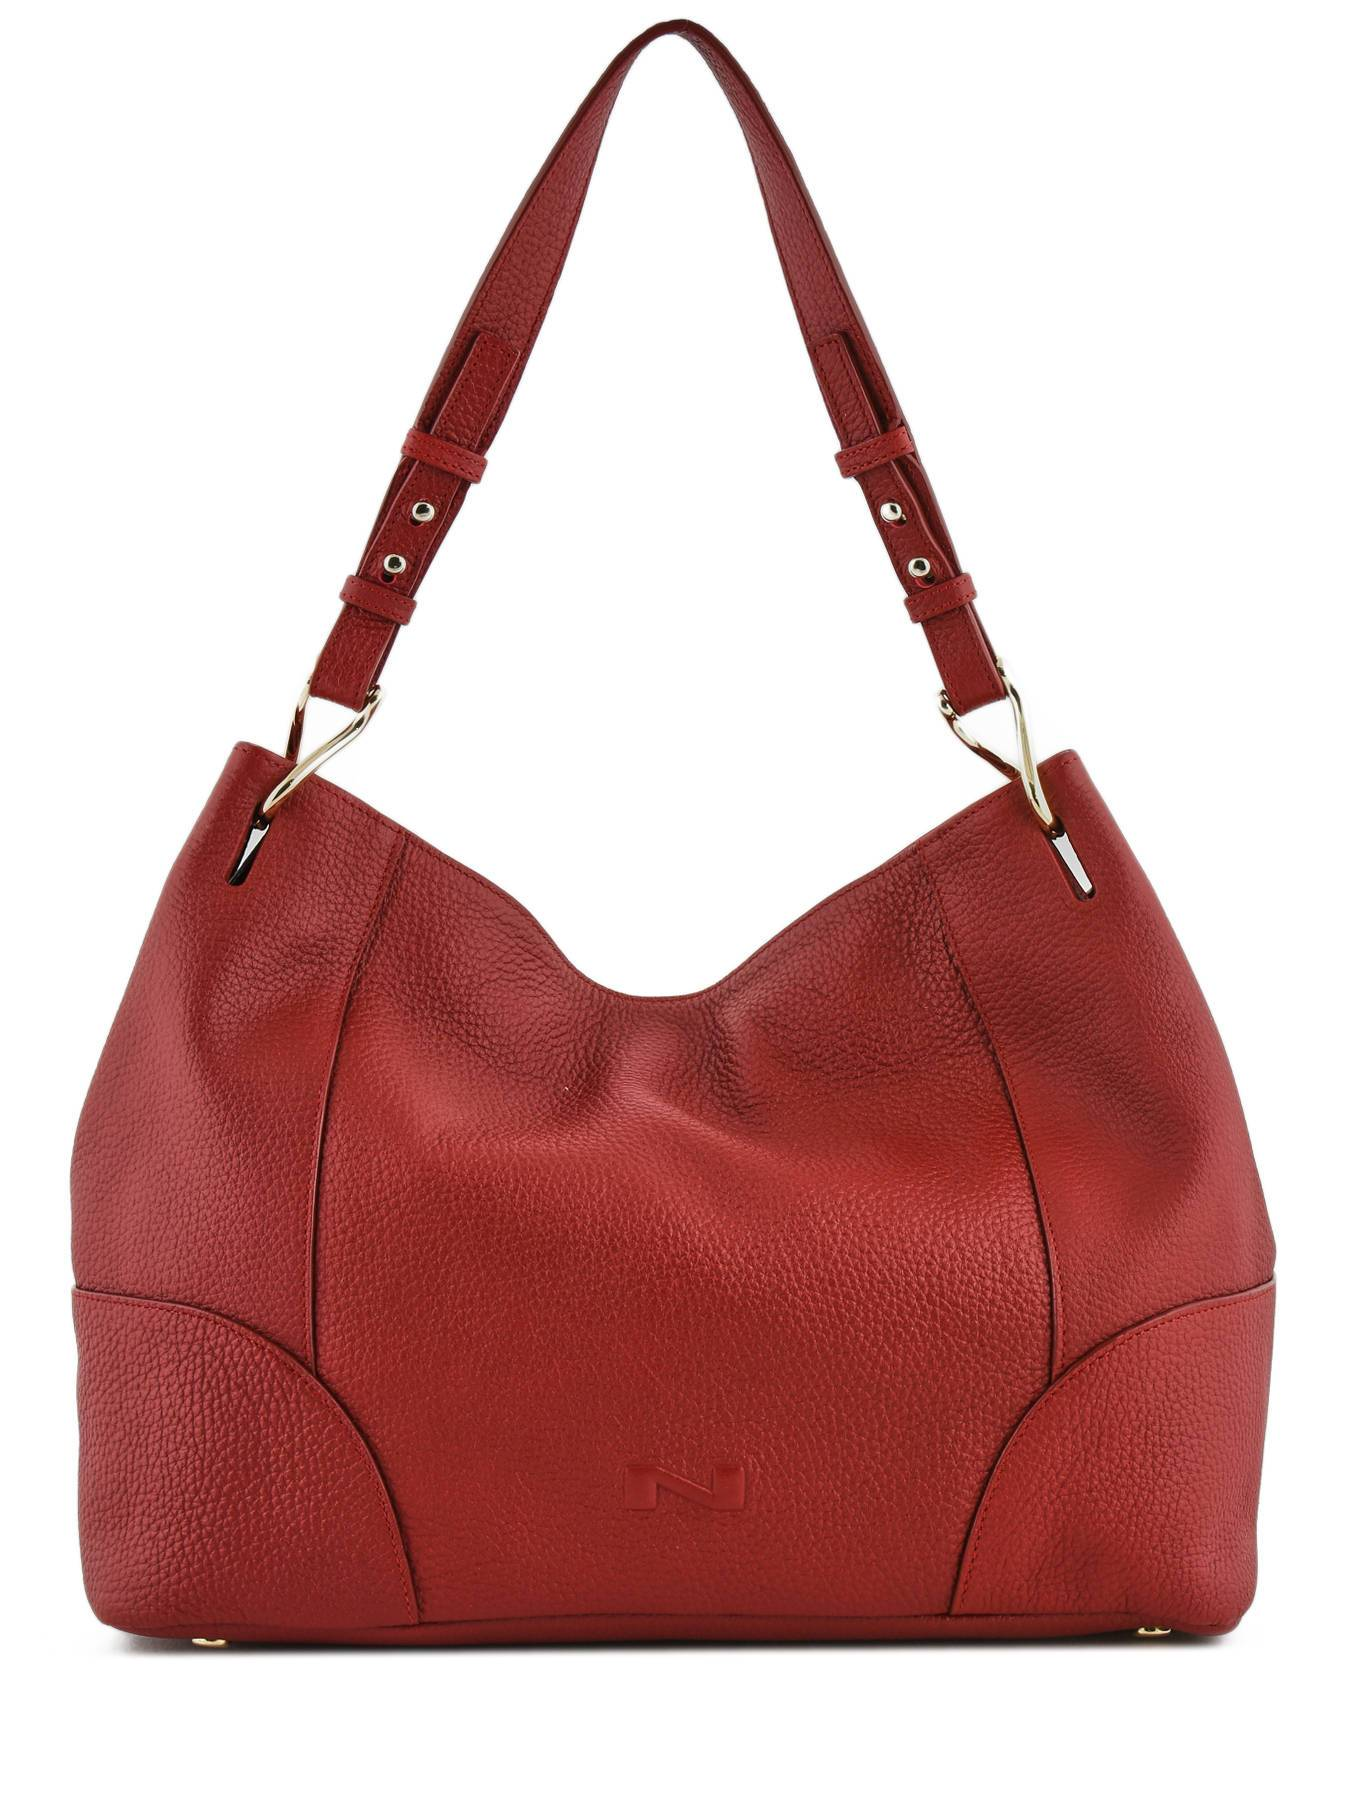 NATHAN BAUME Sac Besace Victoria Cuir Nathan Baume Rouge